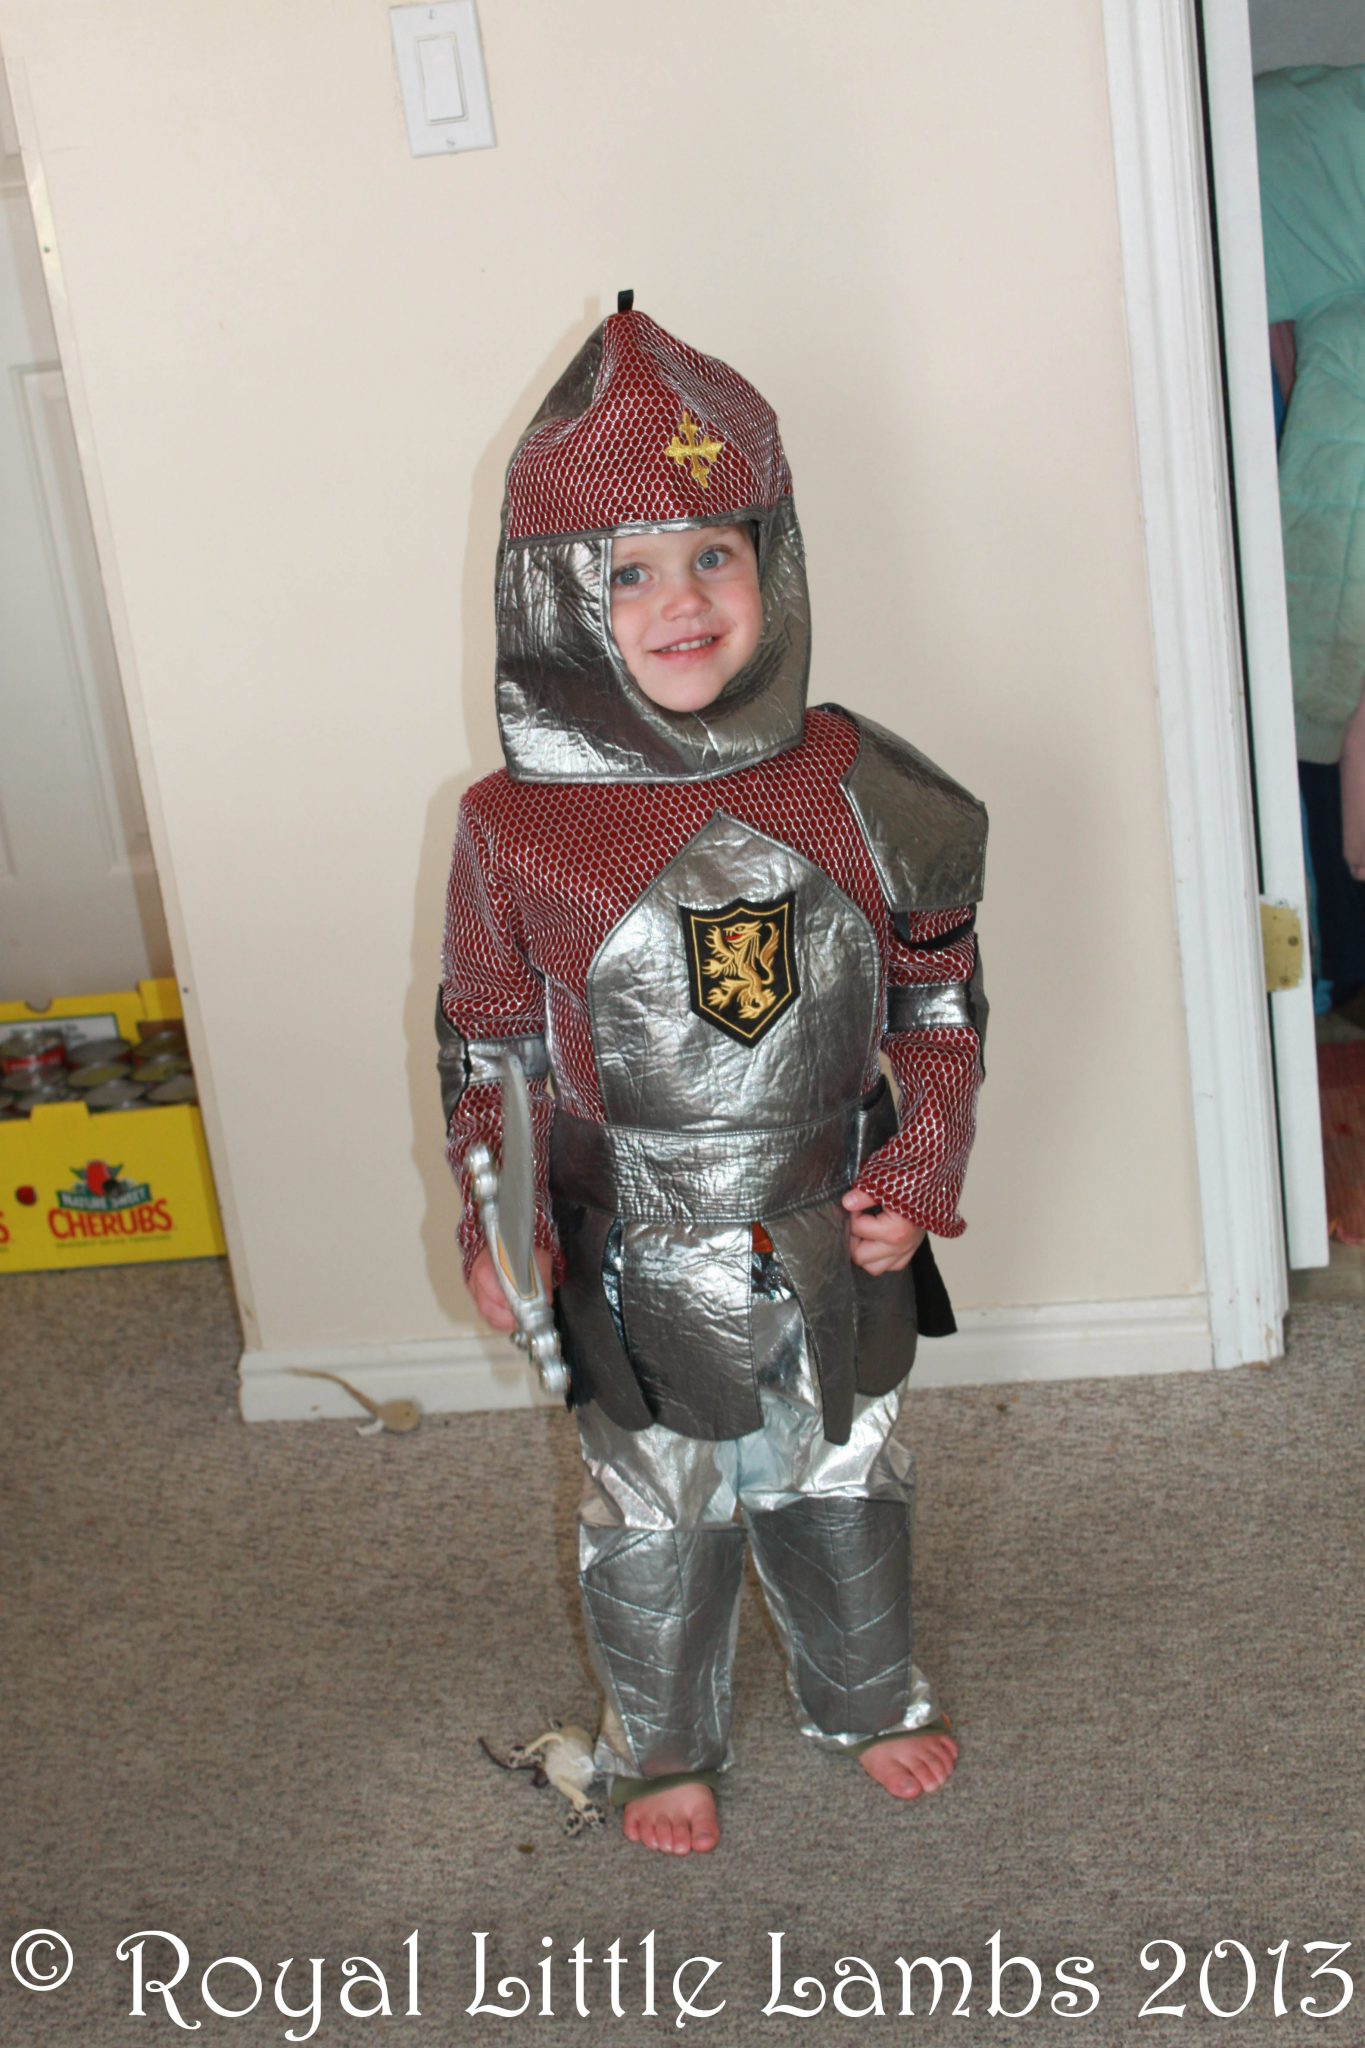 My knight in shining armor